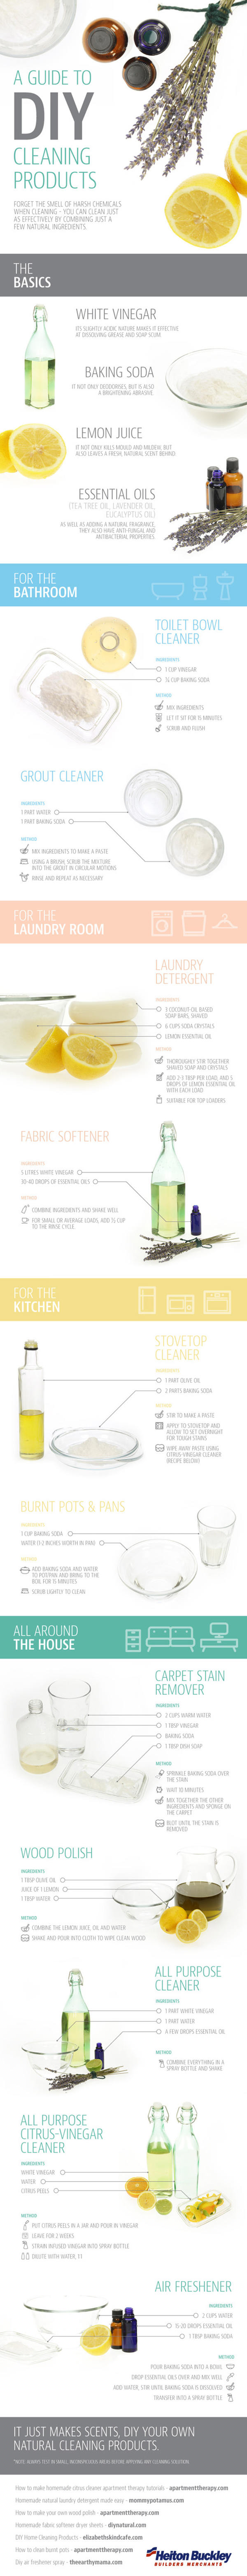 a-guide-to-natural-cleaning-products-infographic-2